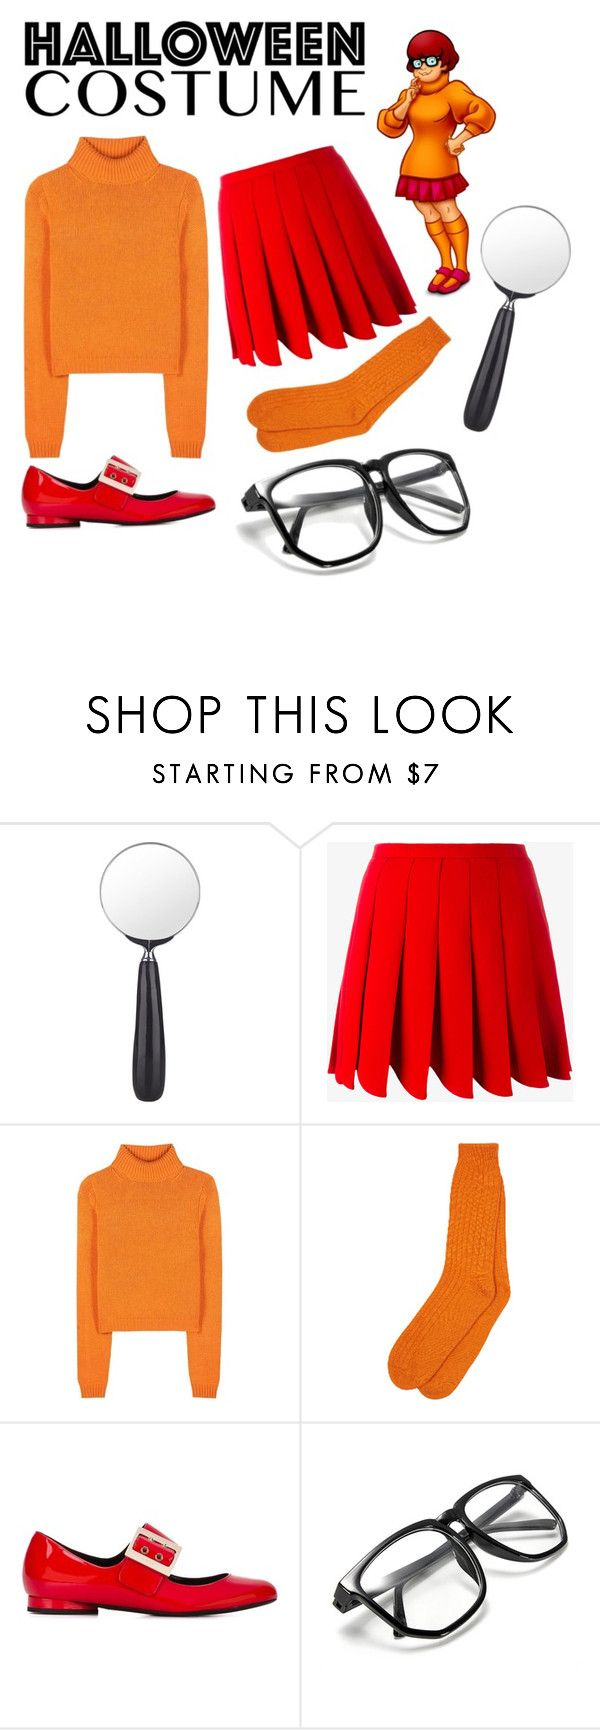 """DIY Velma Costume"" by spicy-milk ❤ liked on Polyvore featuring Cedes, Miu Miu, Acne Studios, Lanvin, halloweencostume and DIYHalloween"